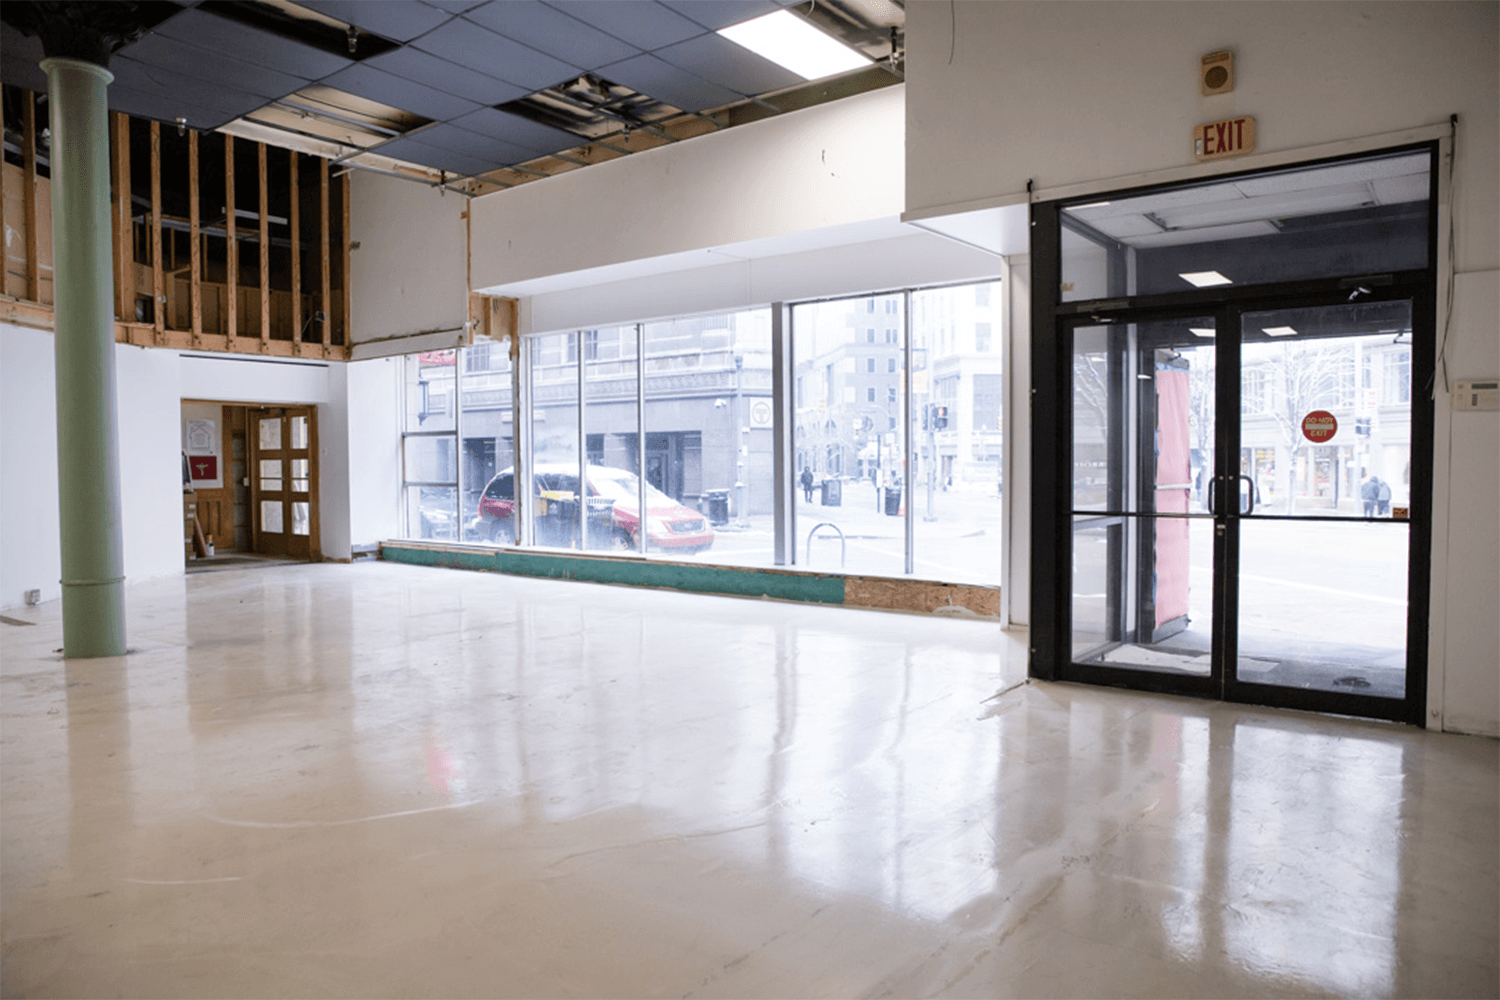 Inside view of the front of the store looking out large windows to the street